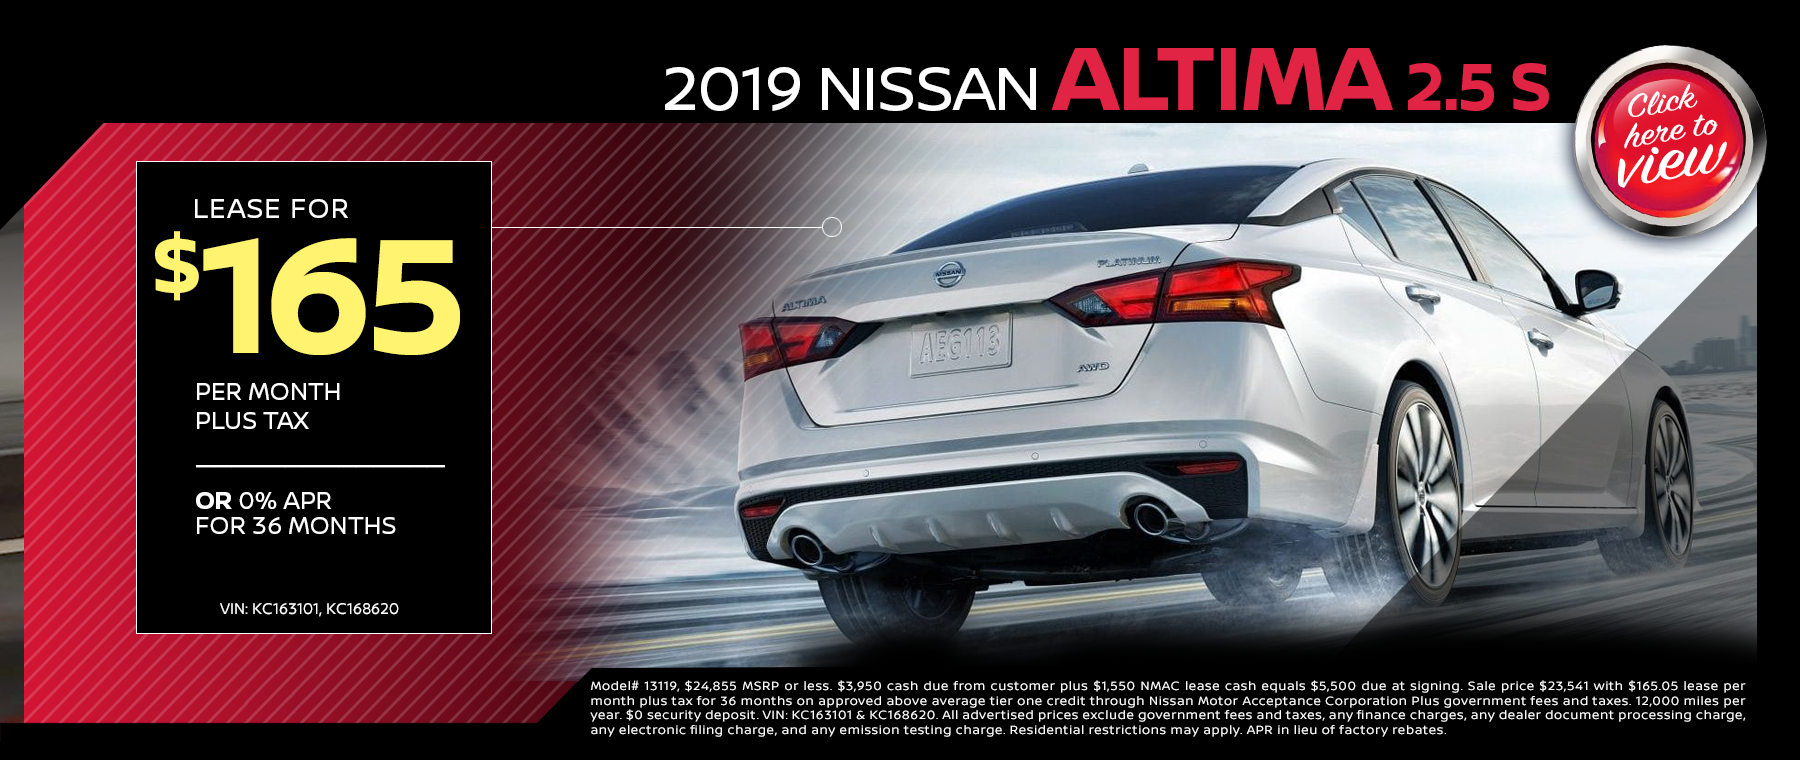 2019 NISSAN ALTIMA LEASE